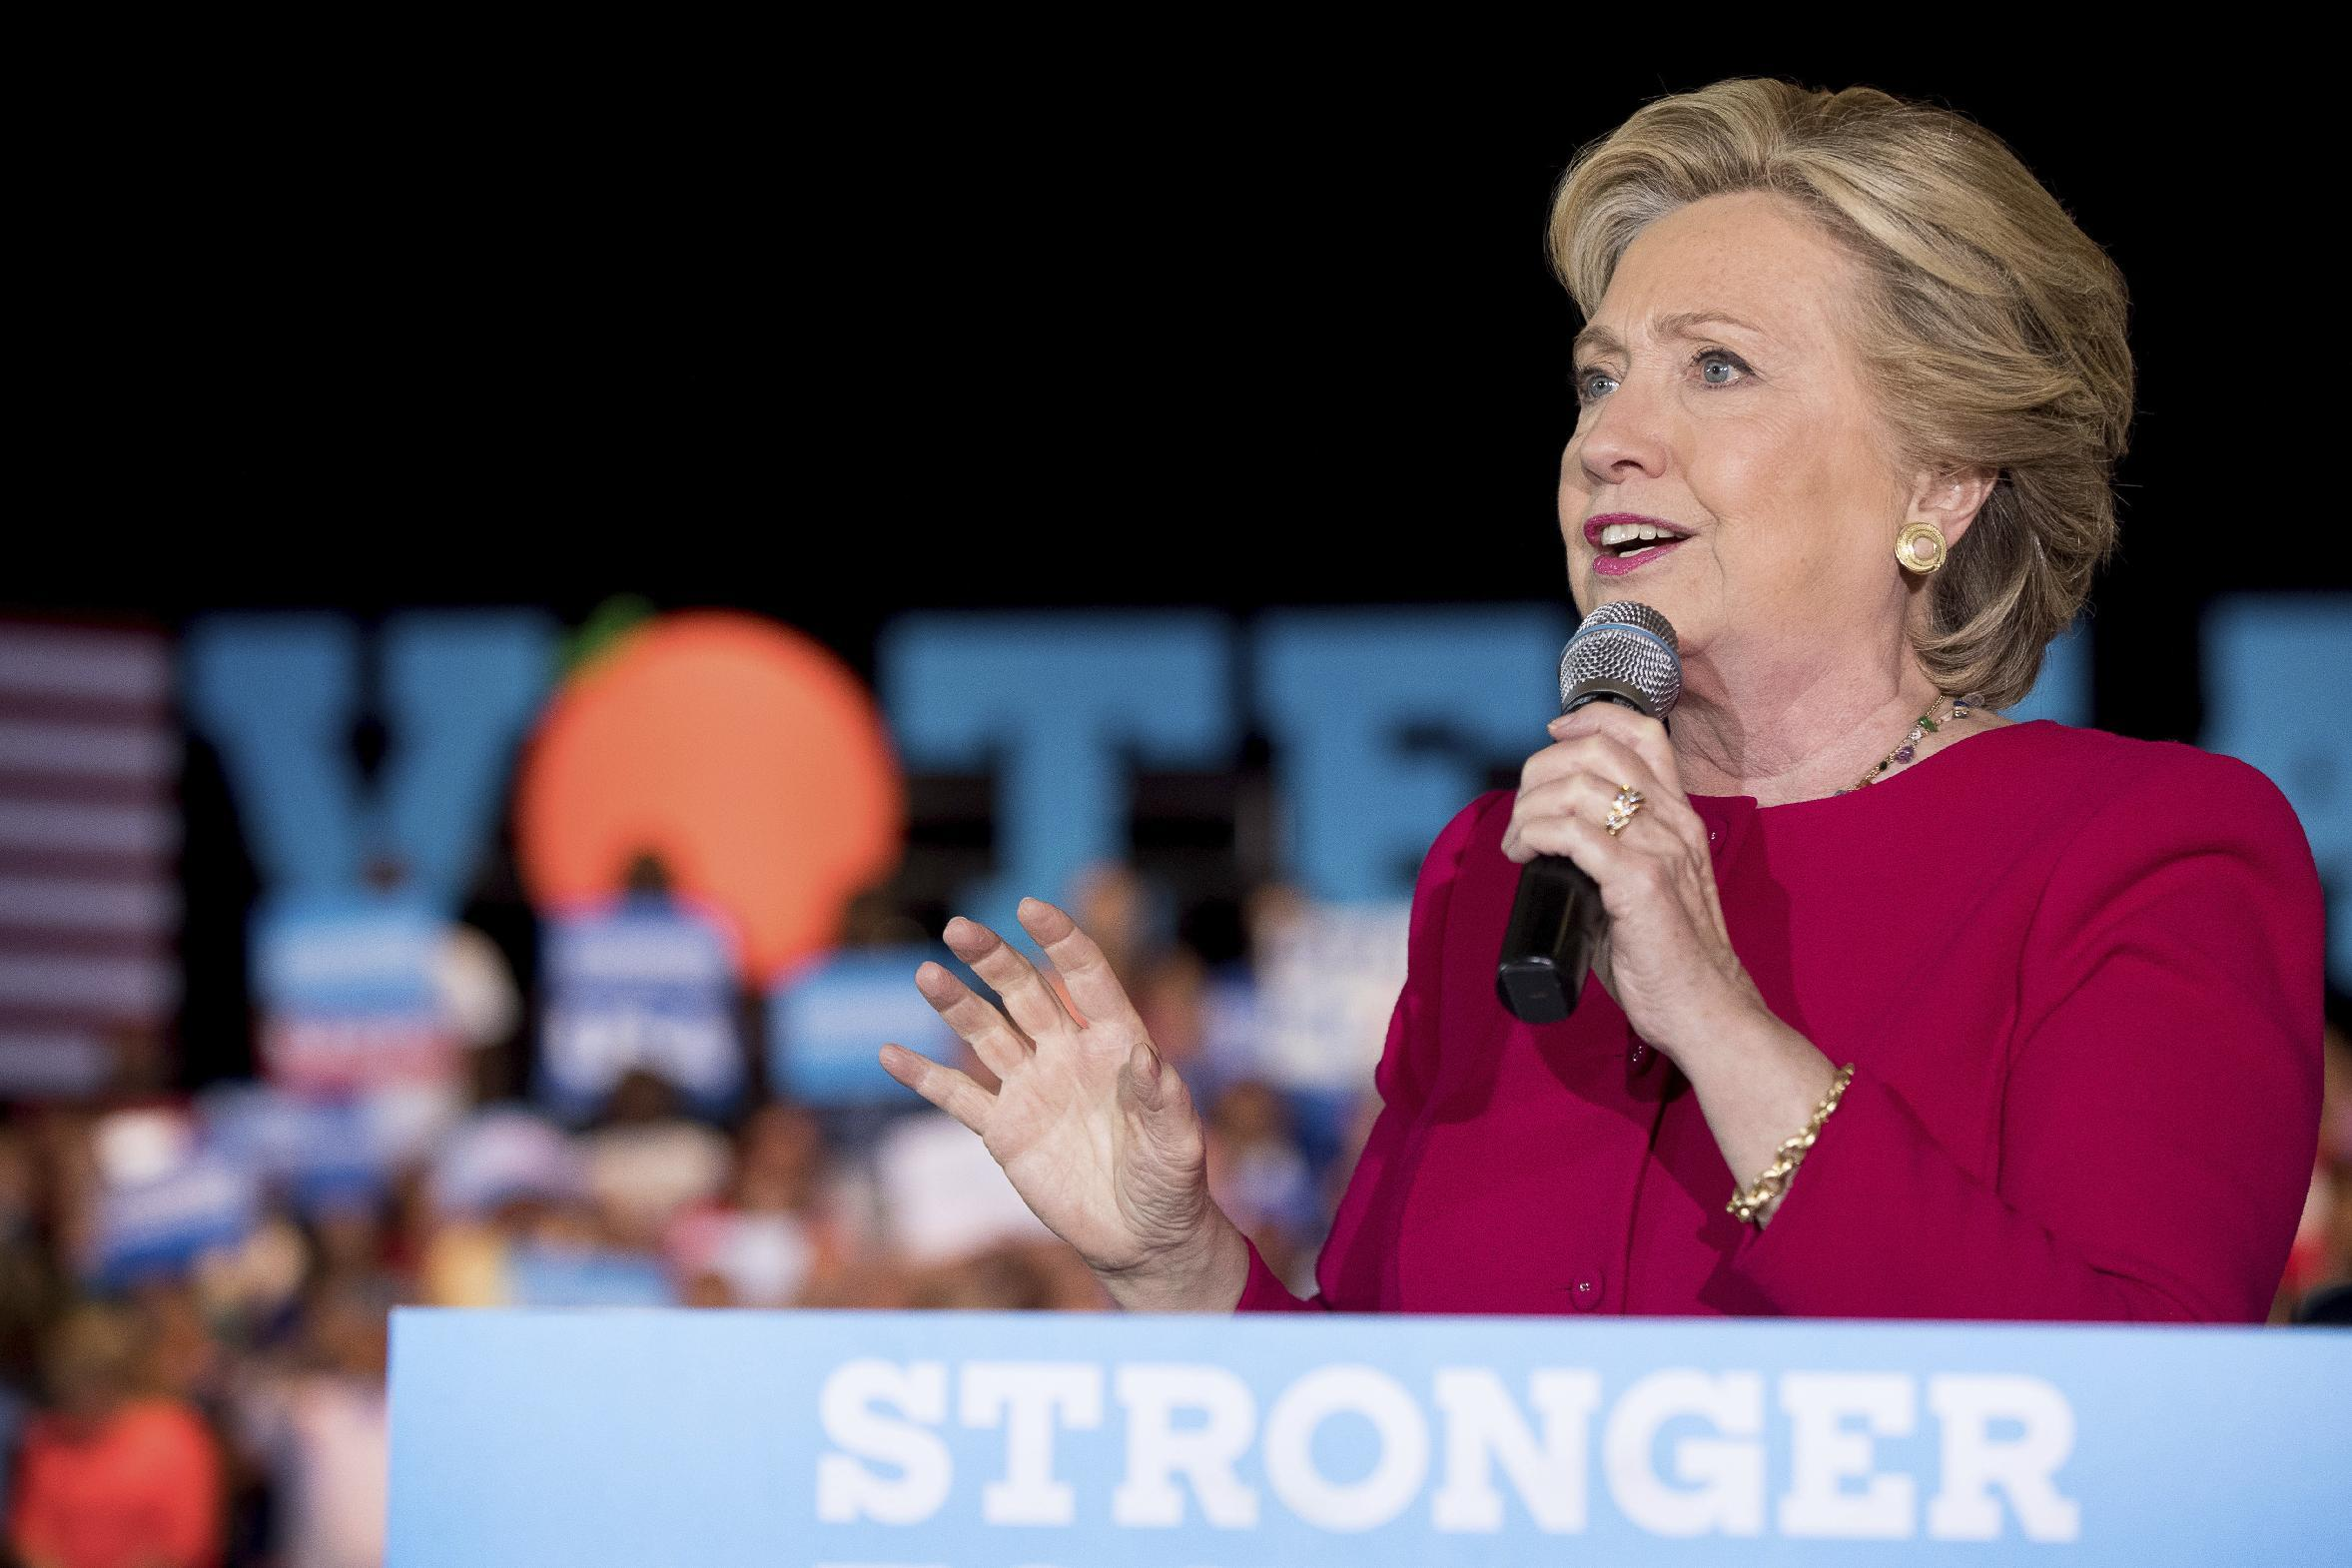 The Latest: Clinton picks up endorsement from UK's Adele